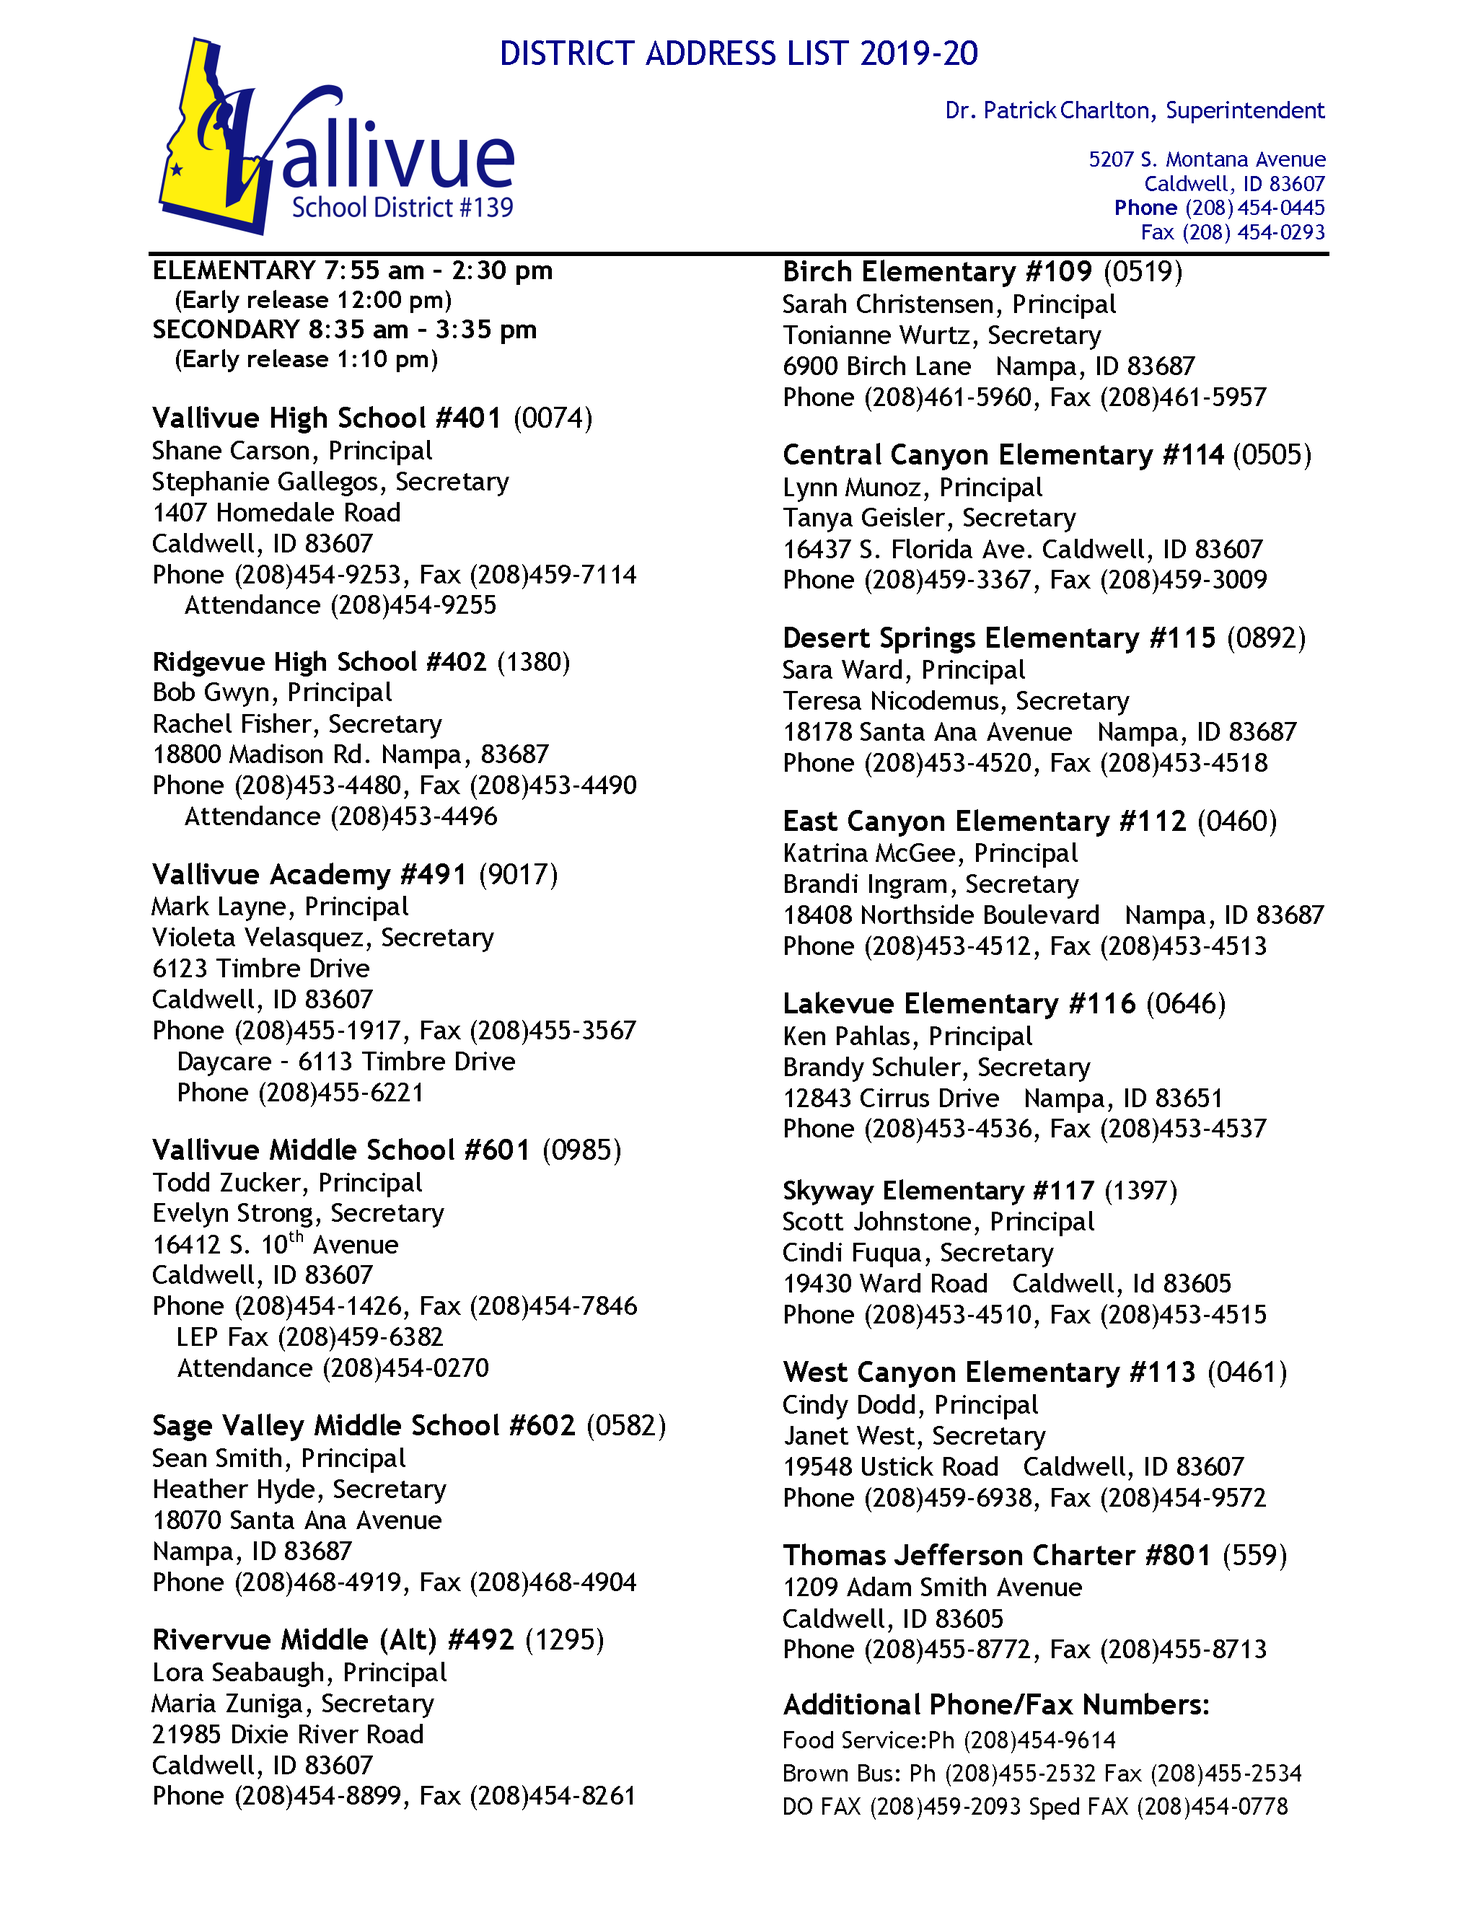 District Contact List